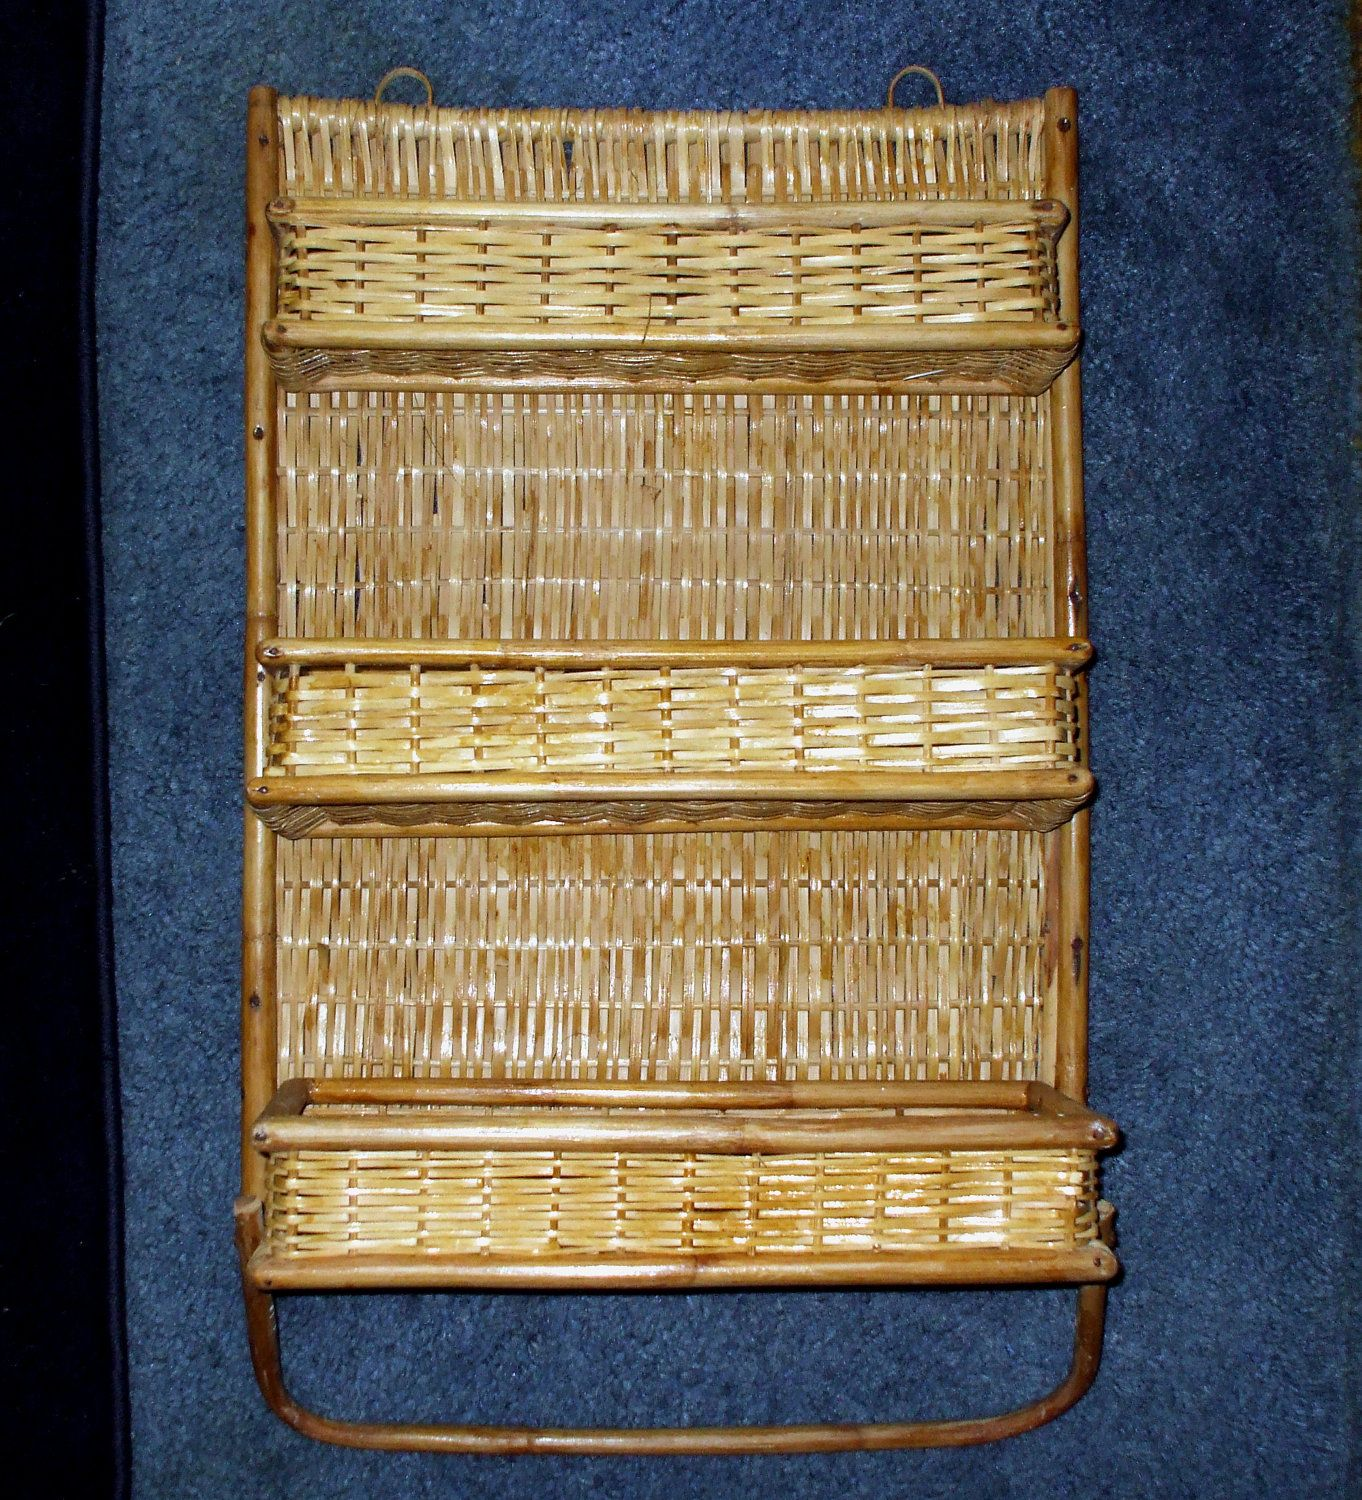 Kitchen Towel Rack Wicker Bamboo Wall Shelf Rattan Three Folding Shelves Hanging